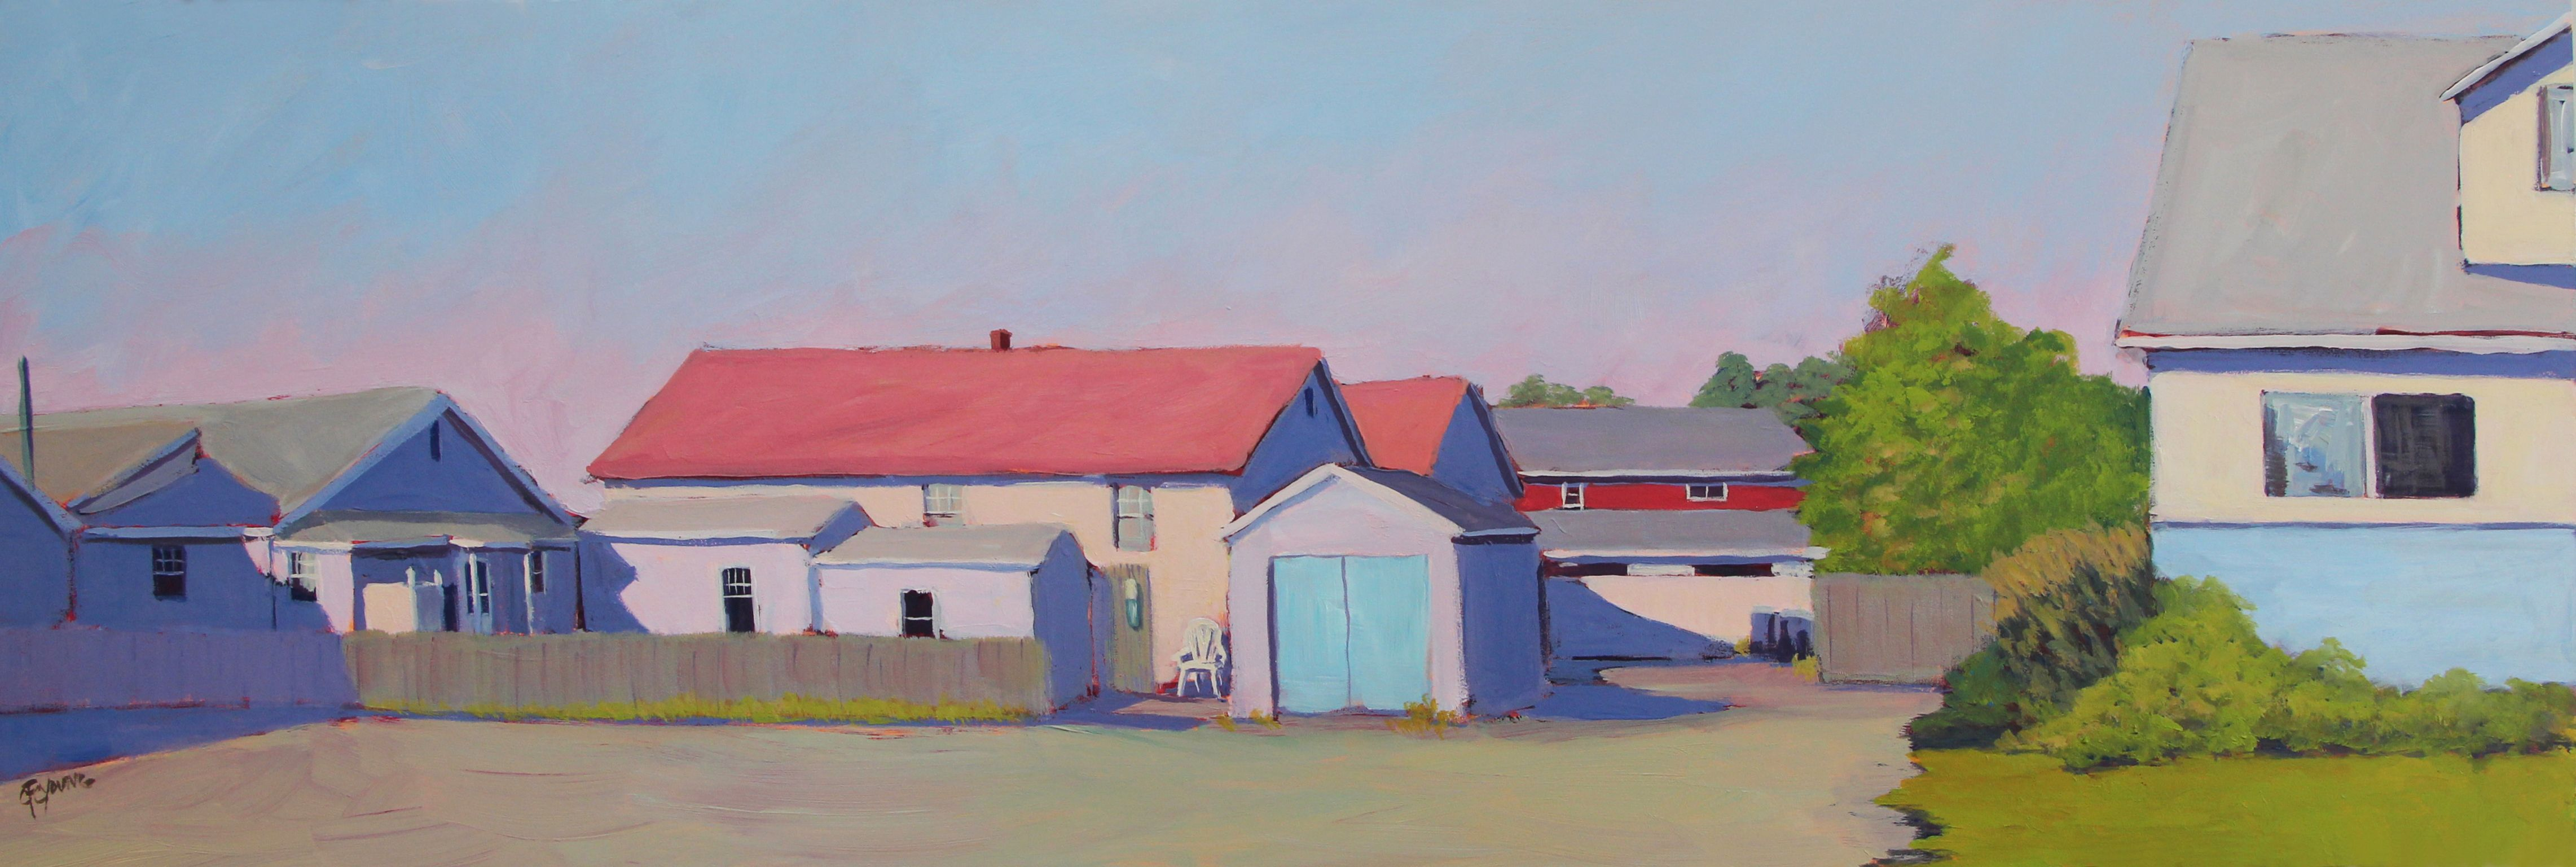 Hopper's Light Cluster of houses and sheds by the sea.